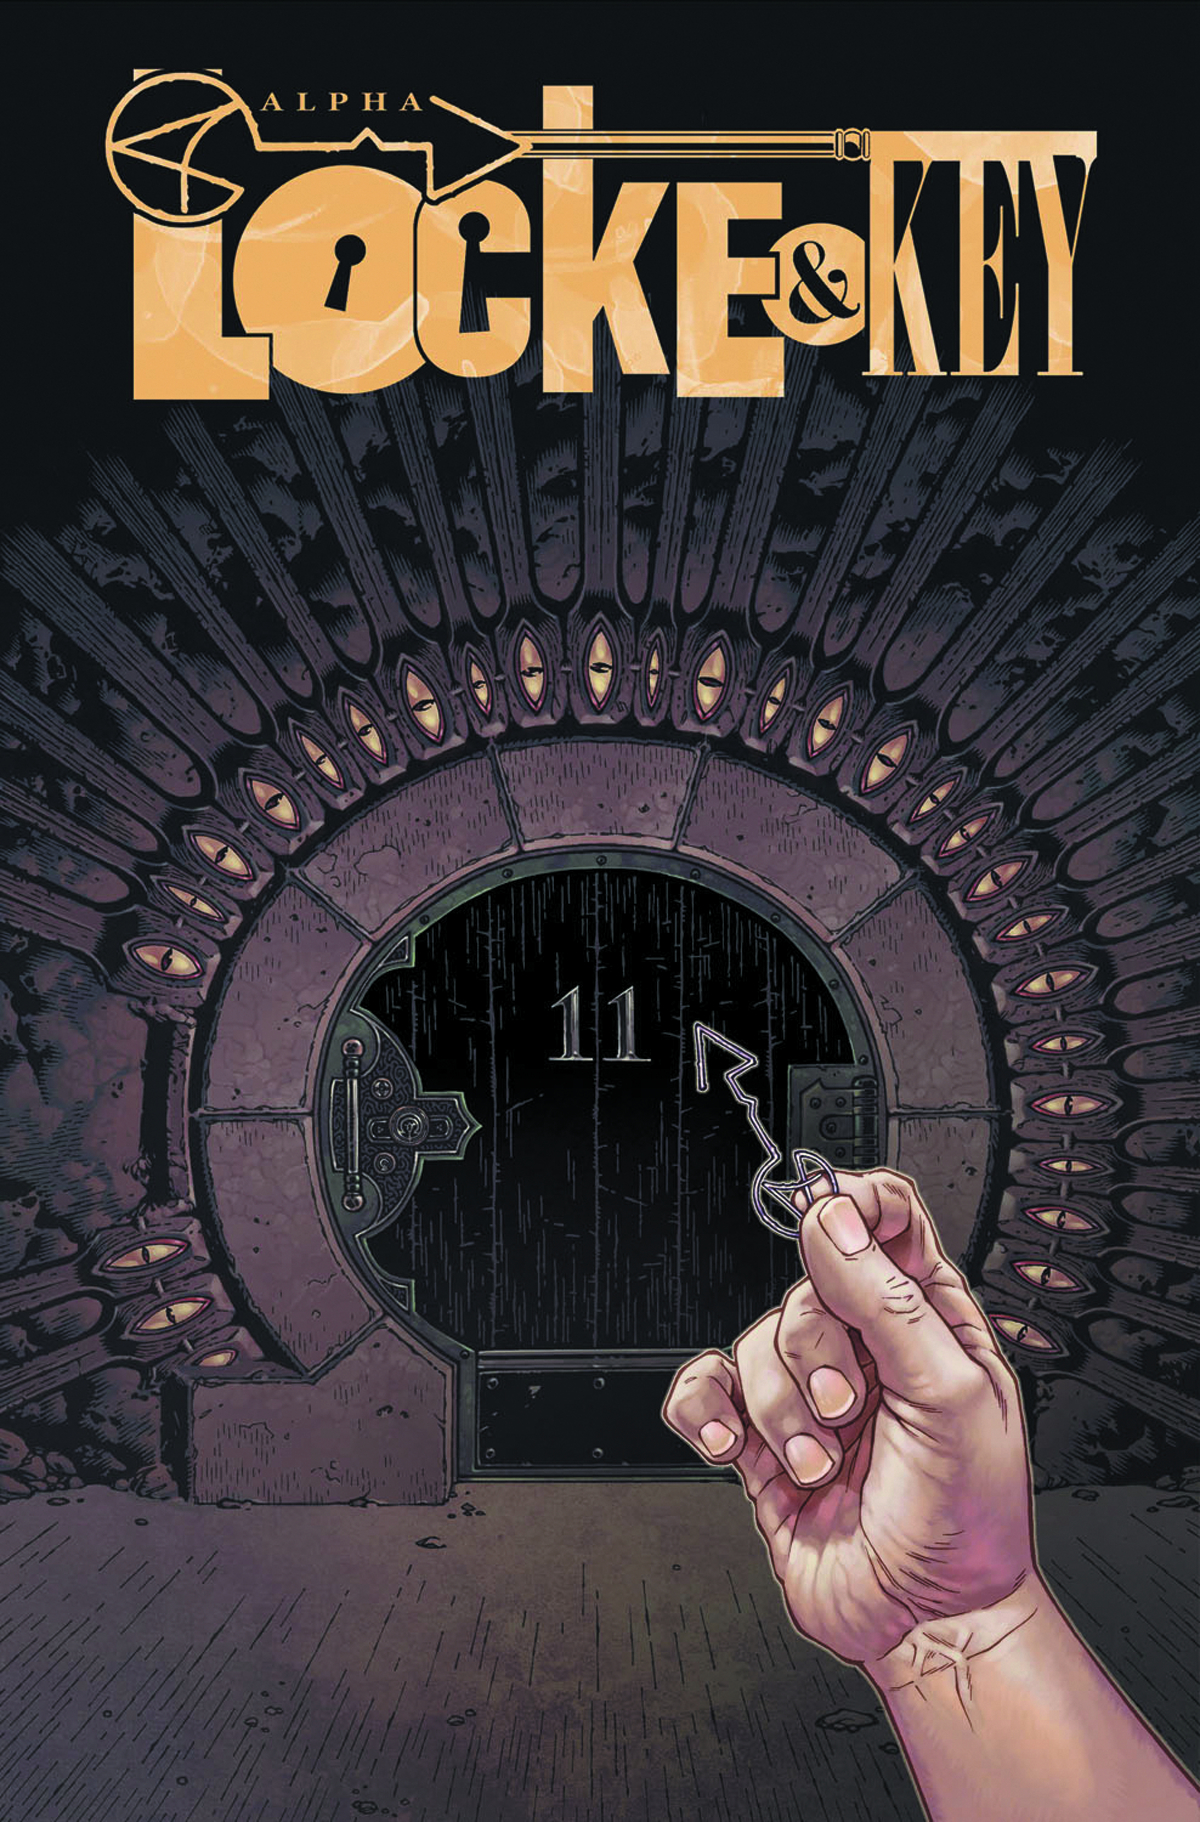 LOCKE & KEY HC VOL 06 ALPHA & OMEGA SERIES SLIPCASE ED